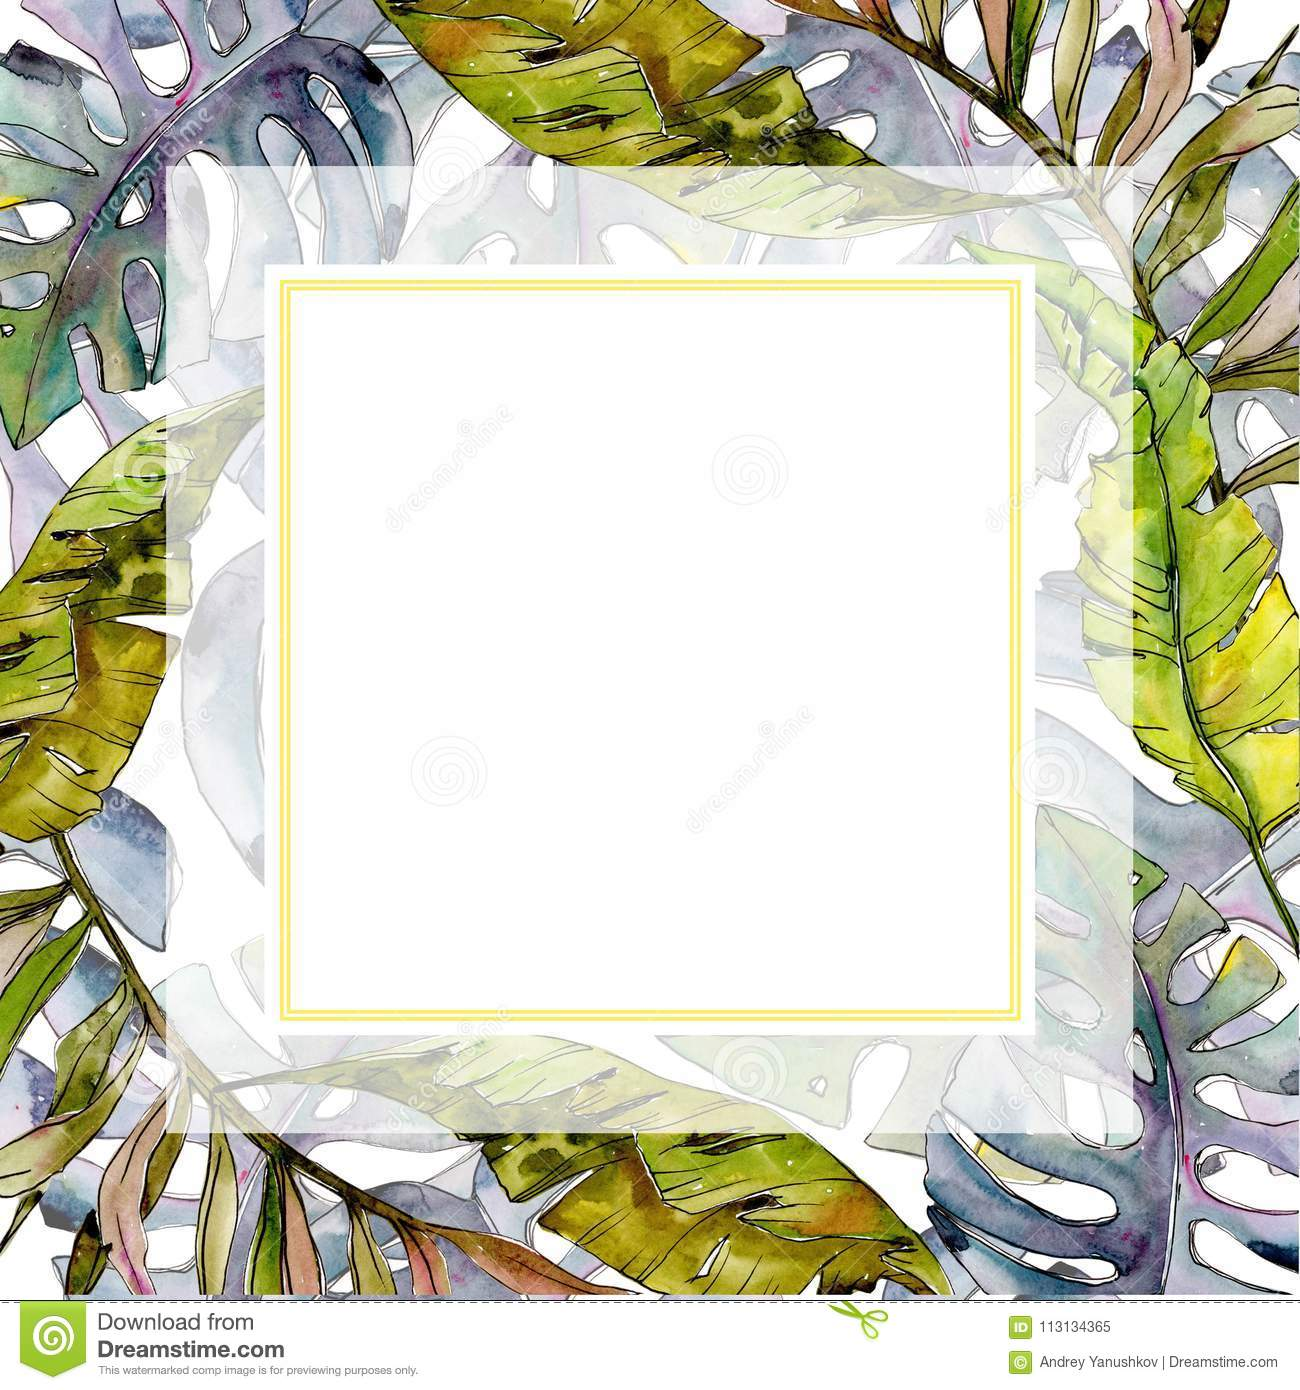 Tropical Hawaii Leaves Tree Frame In A Watercolor Style. Stock ...